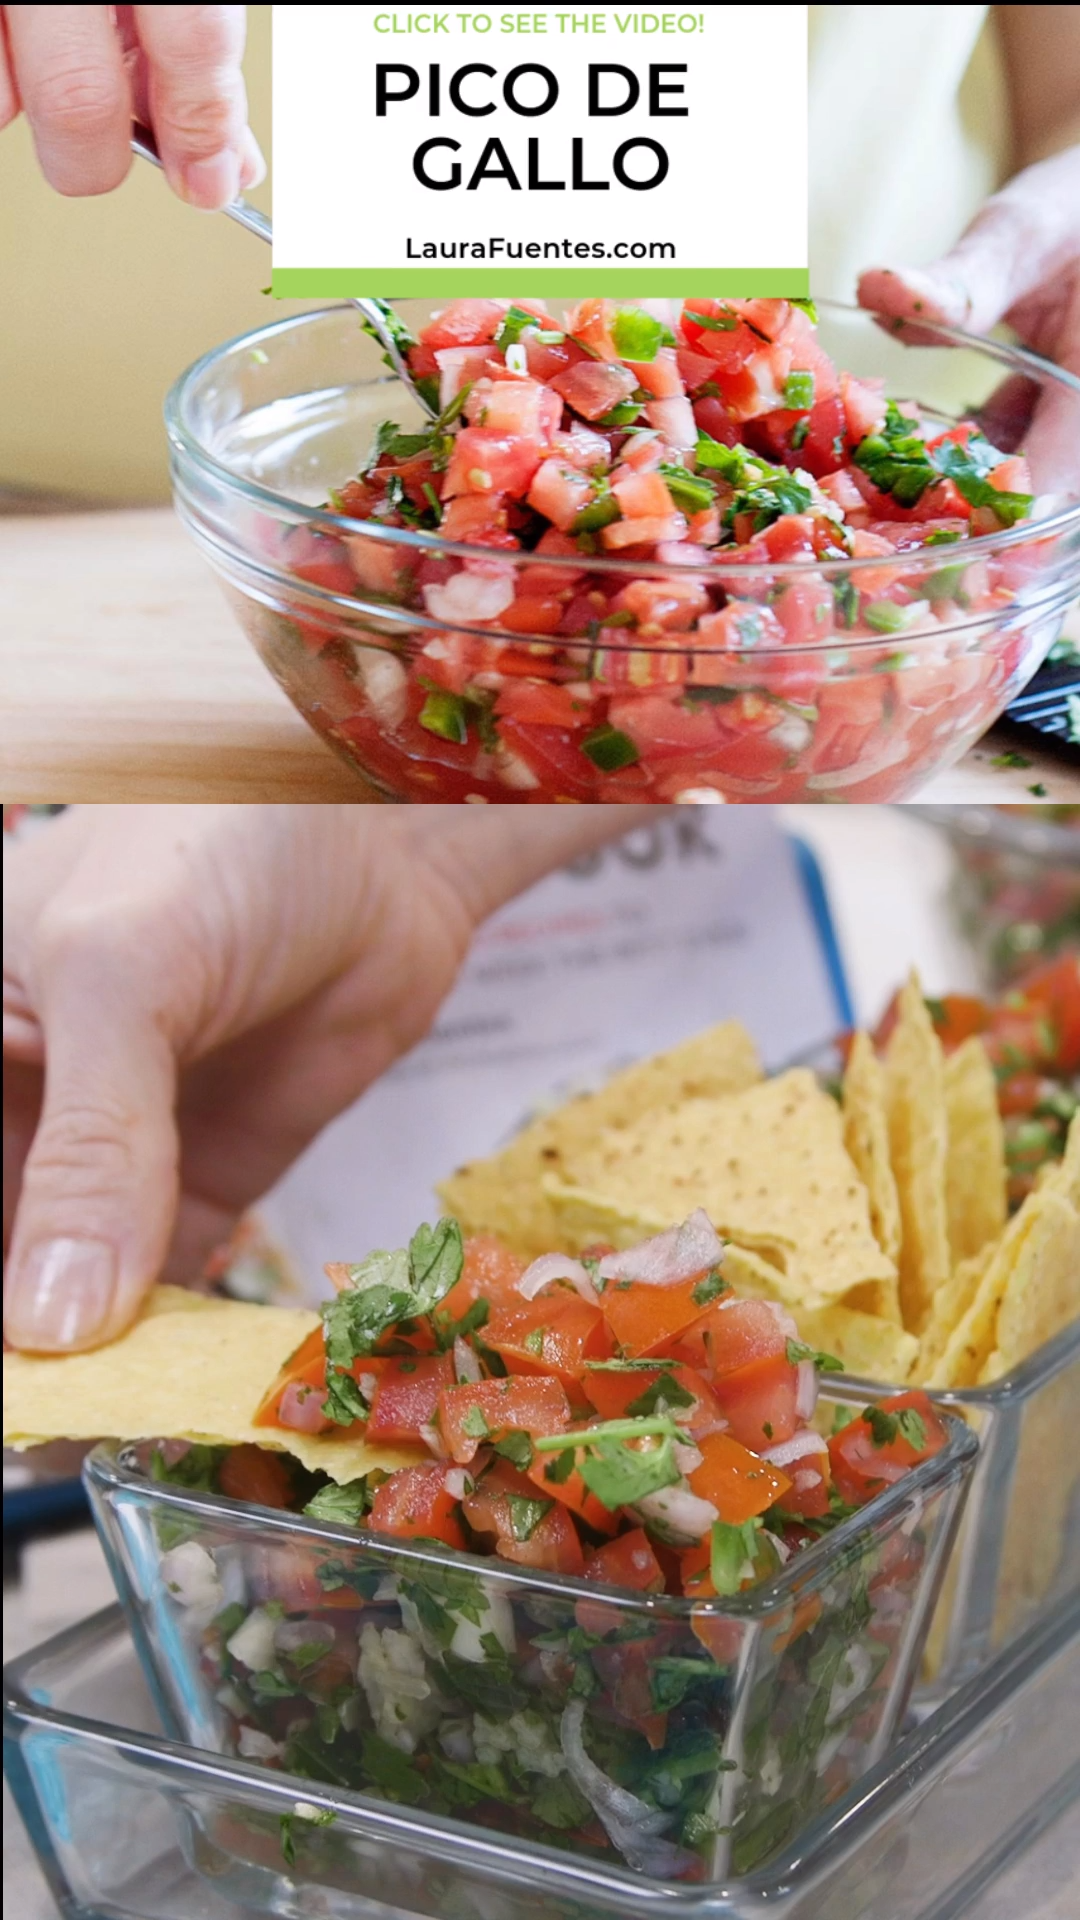 FRESH HOMEMADE PICO DE GALLO